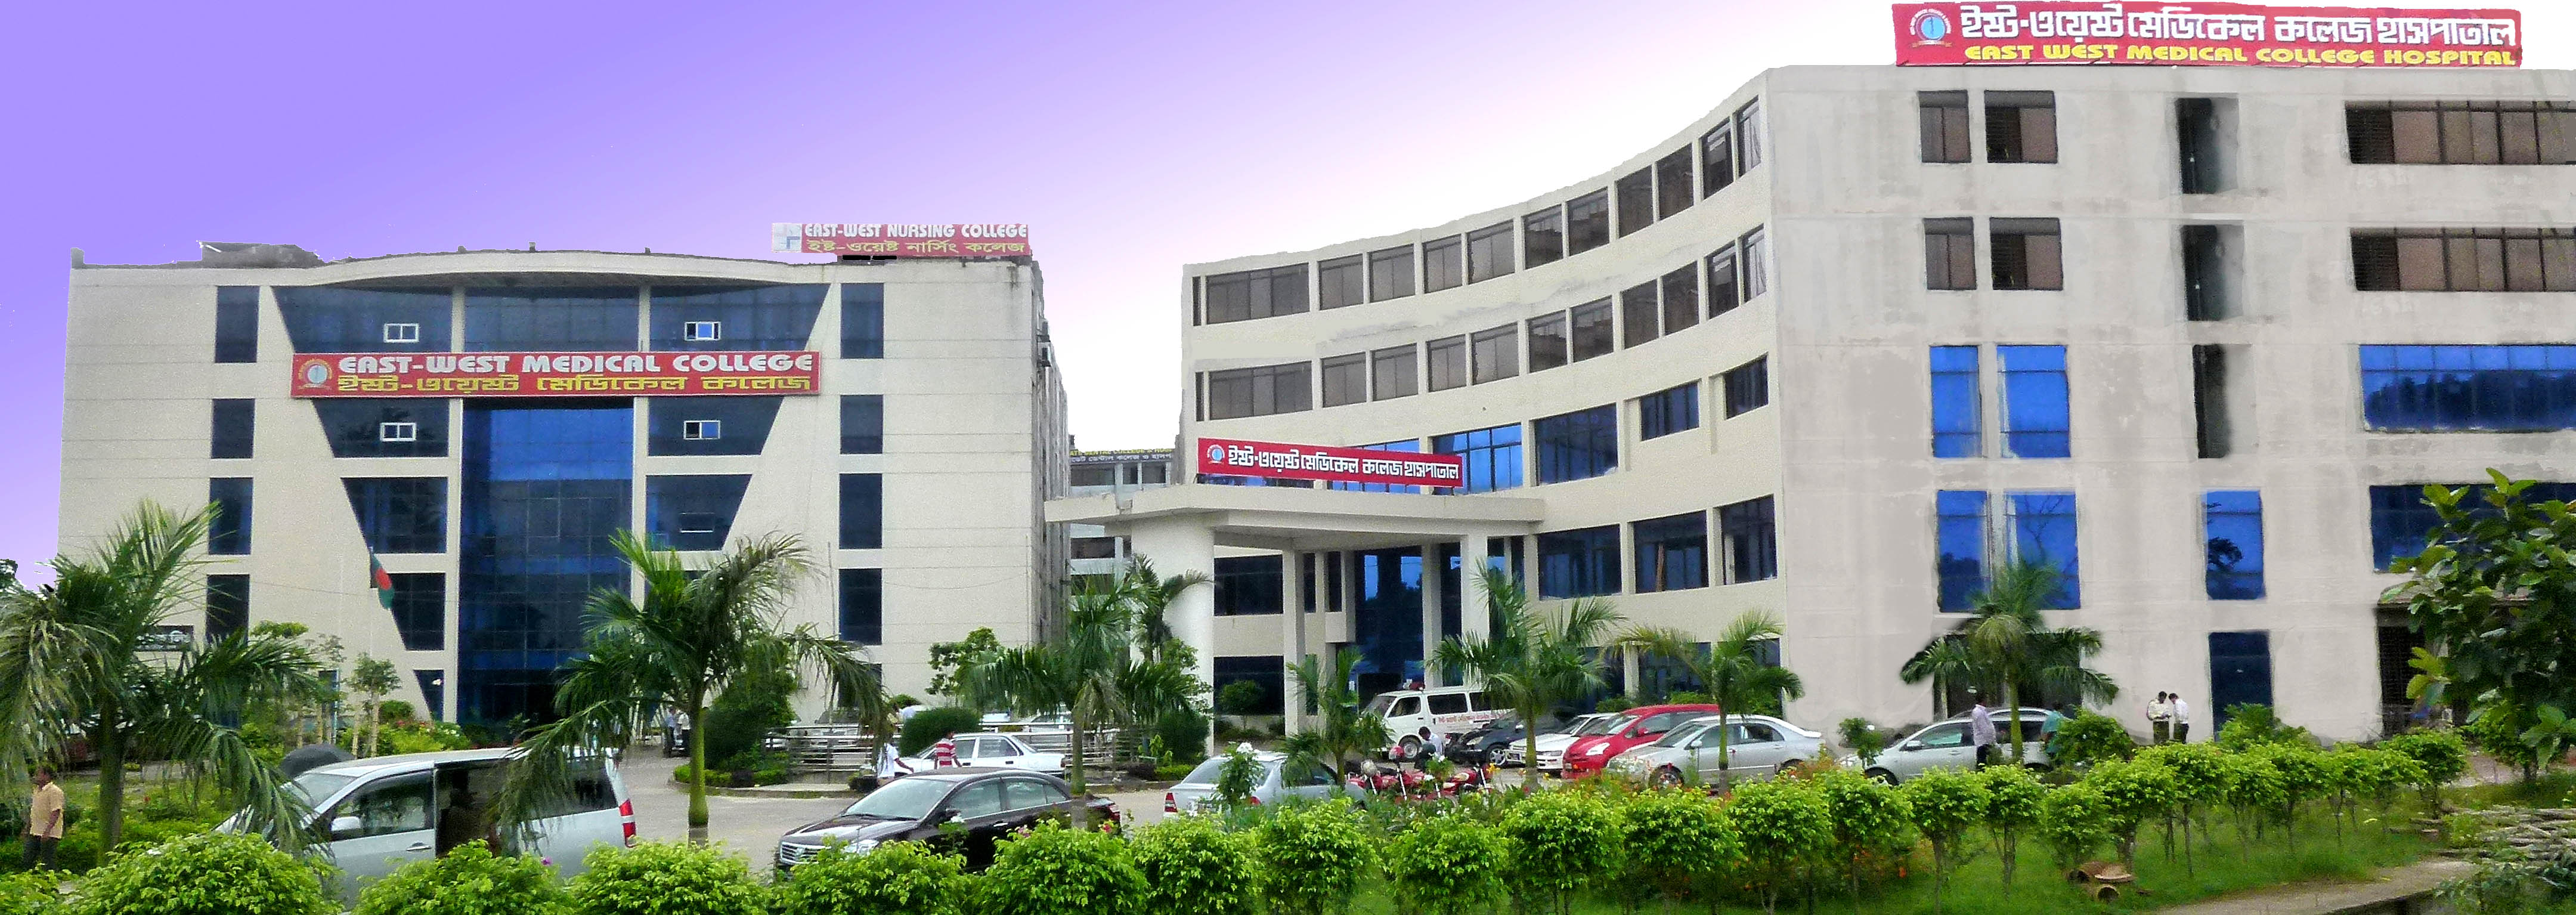 east-west-medical-college